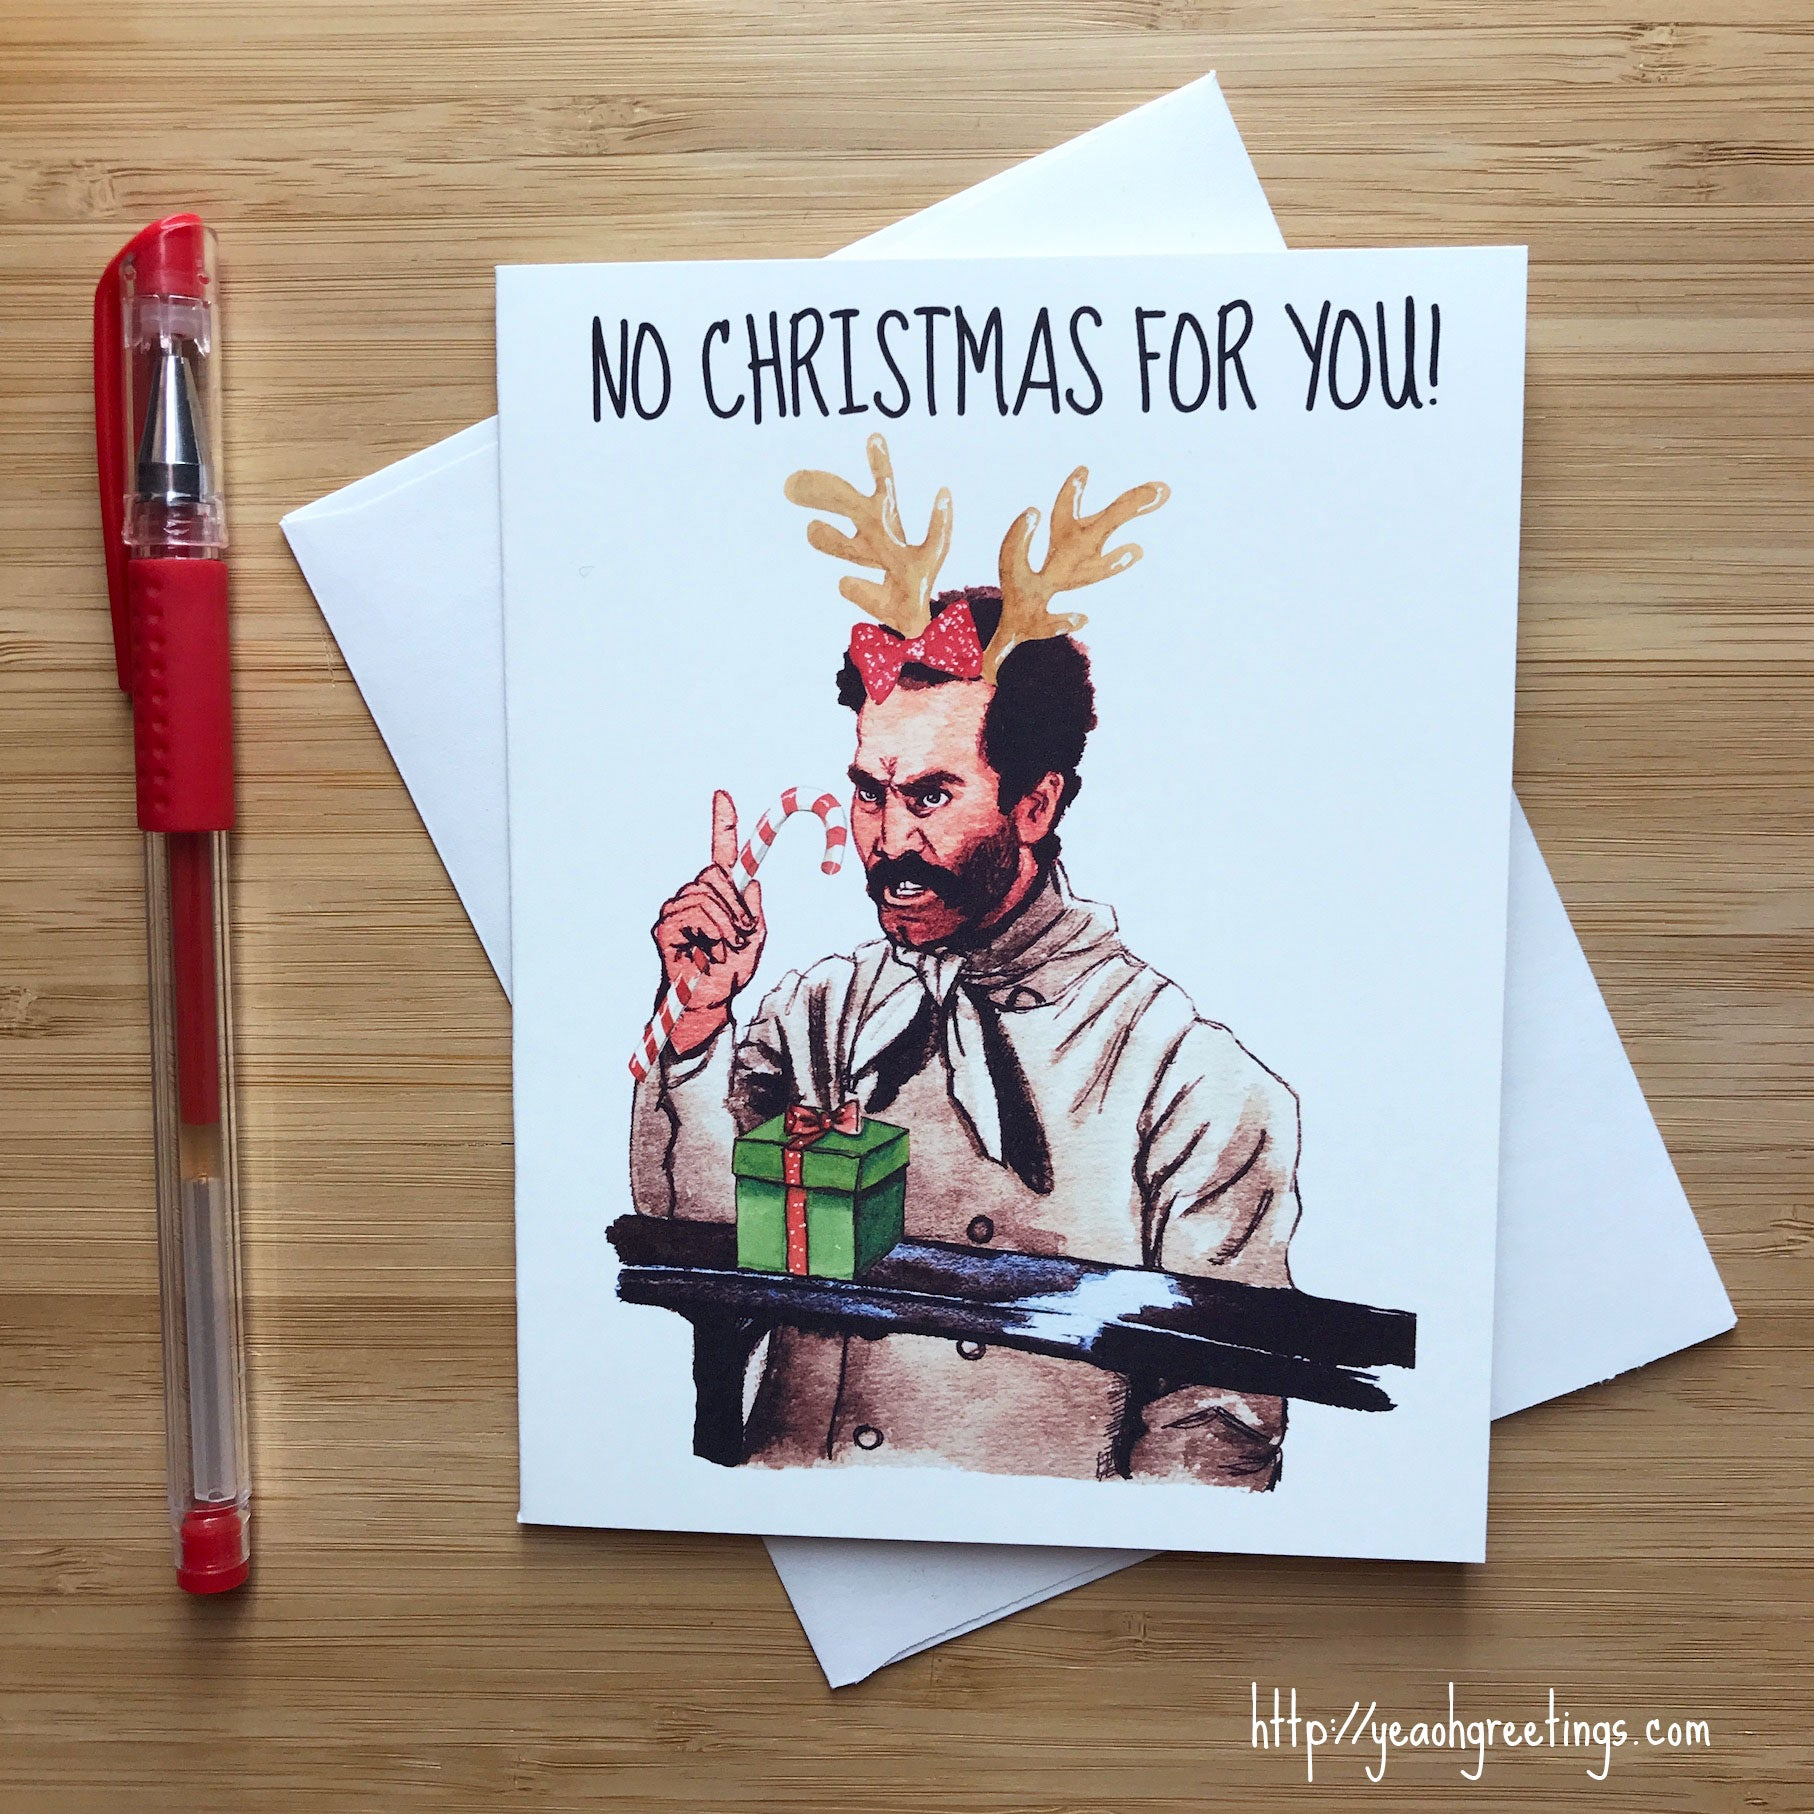 Soup Nazi Seinfeld Christmas Card, Funny Seinfeld Meme Holiday Cards ...